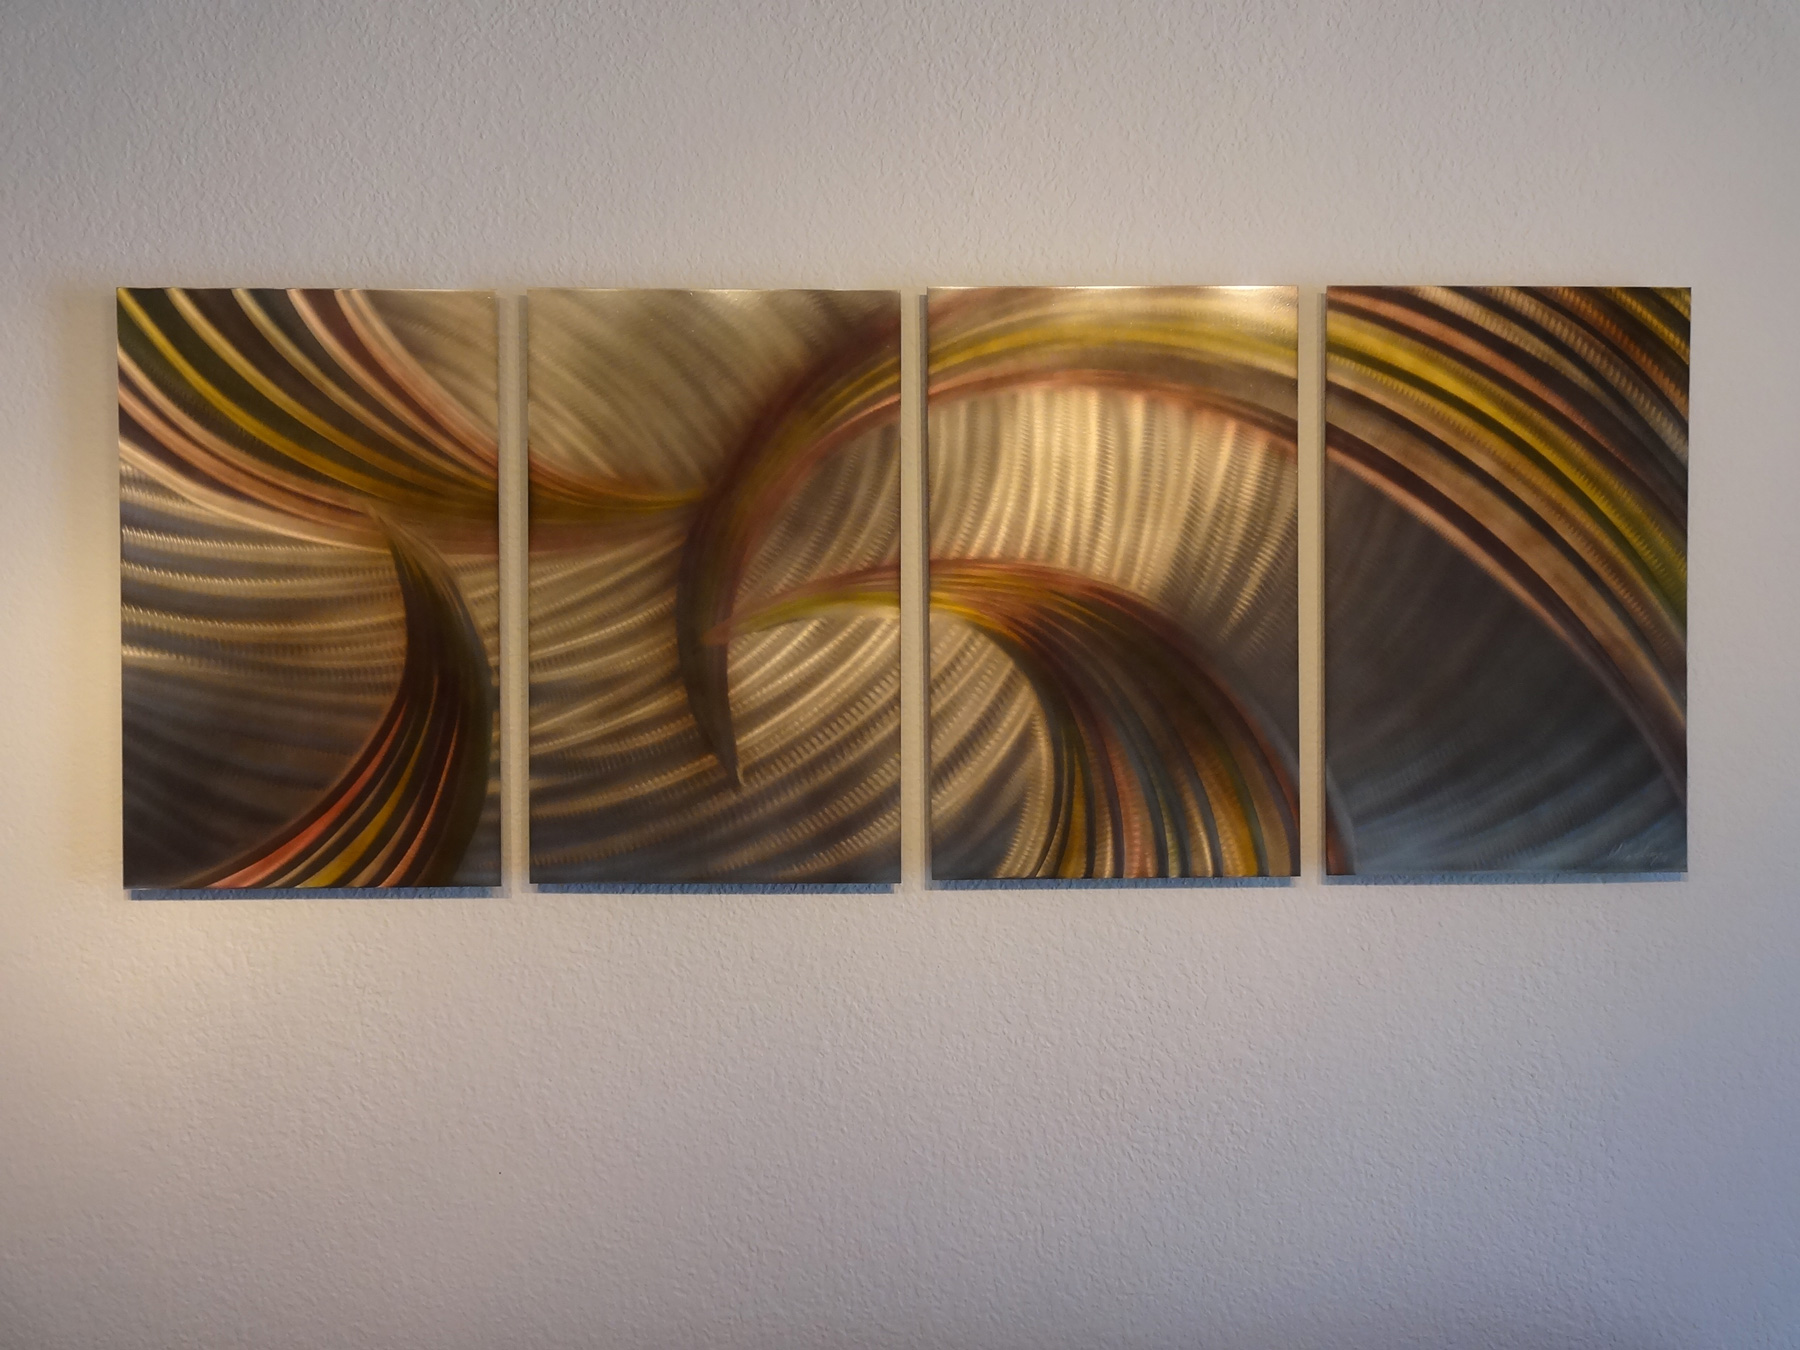 High Quality Tempest Bronze   Abstract Metal Wall Art Contemporary Modern Decor    Thumbnail 1 ...